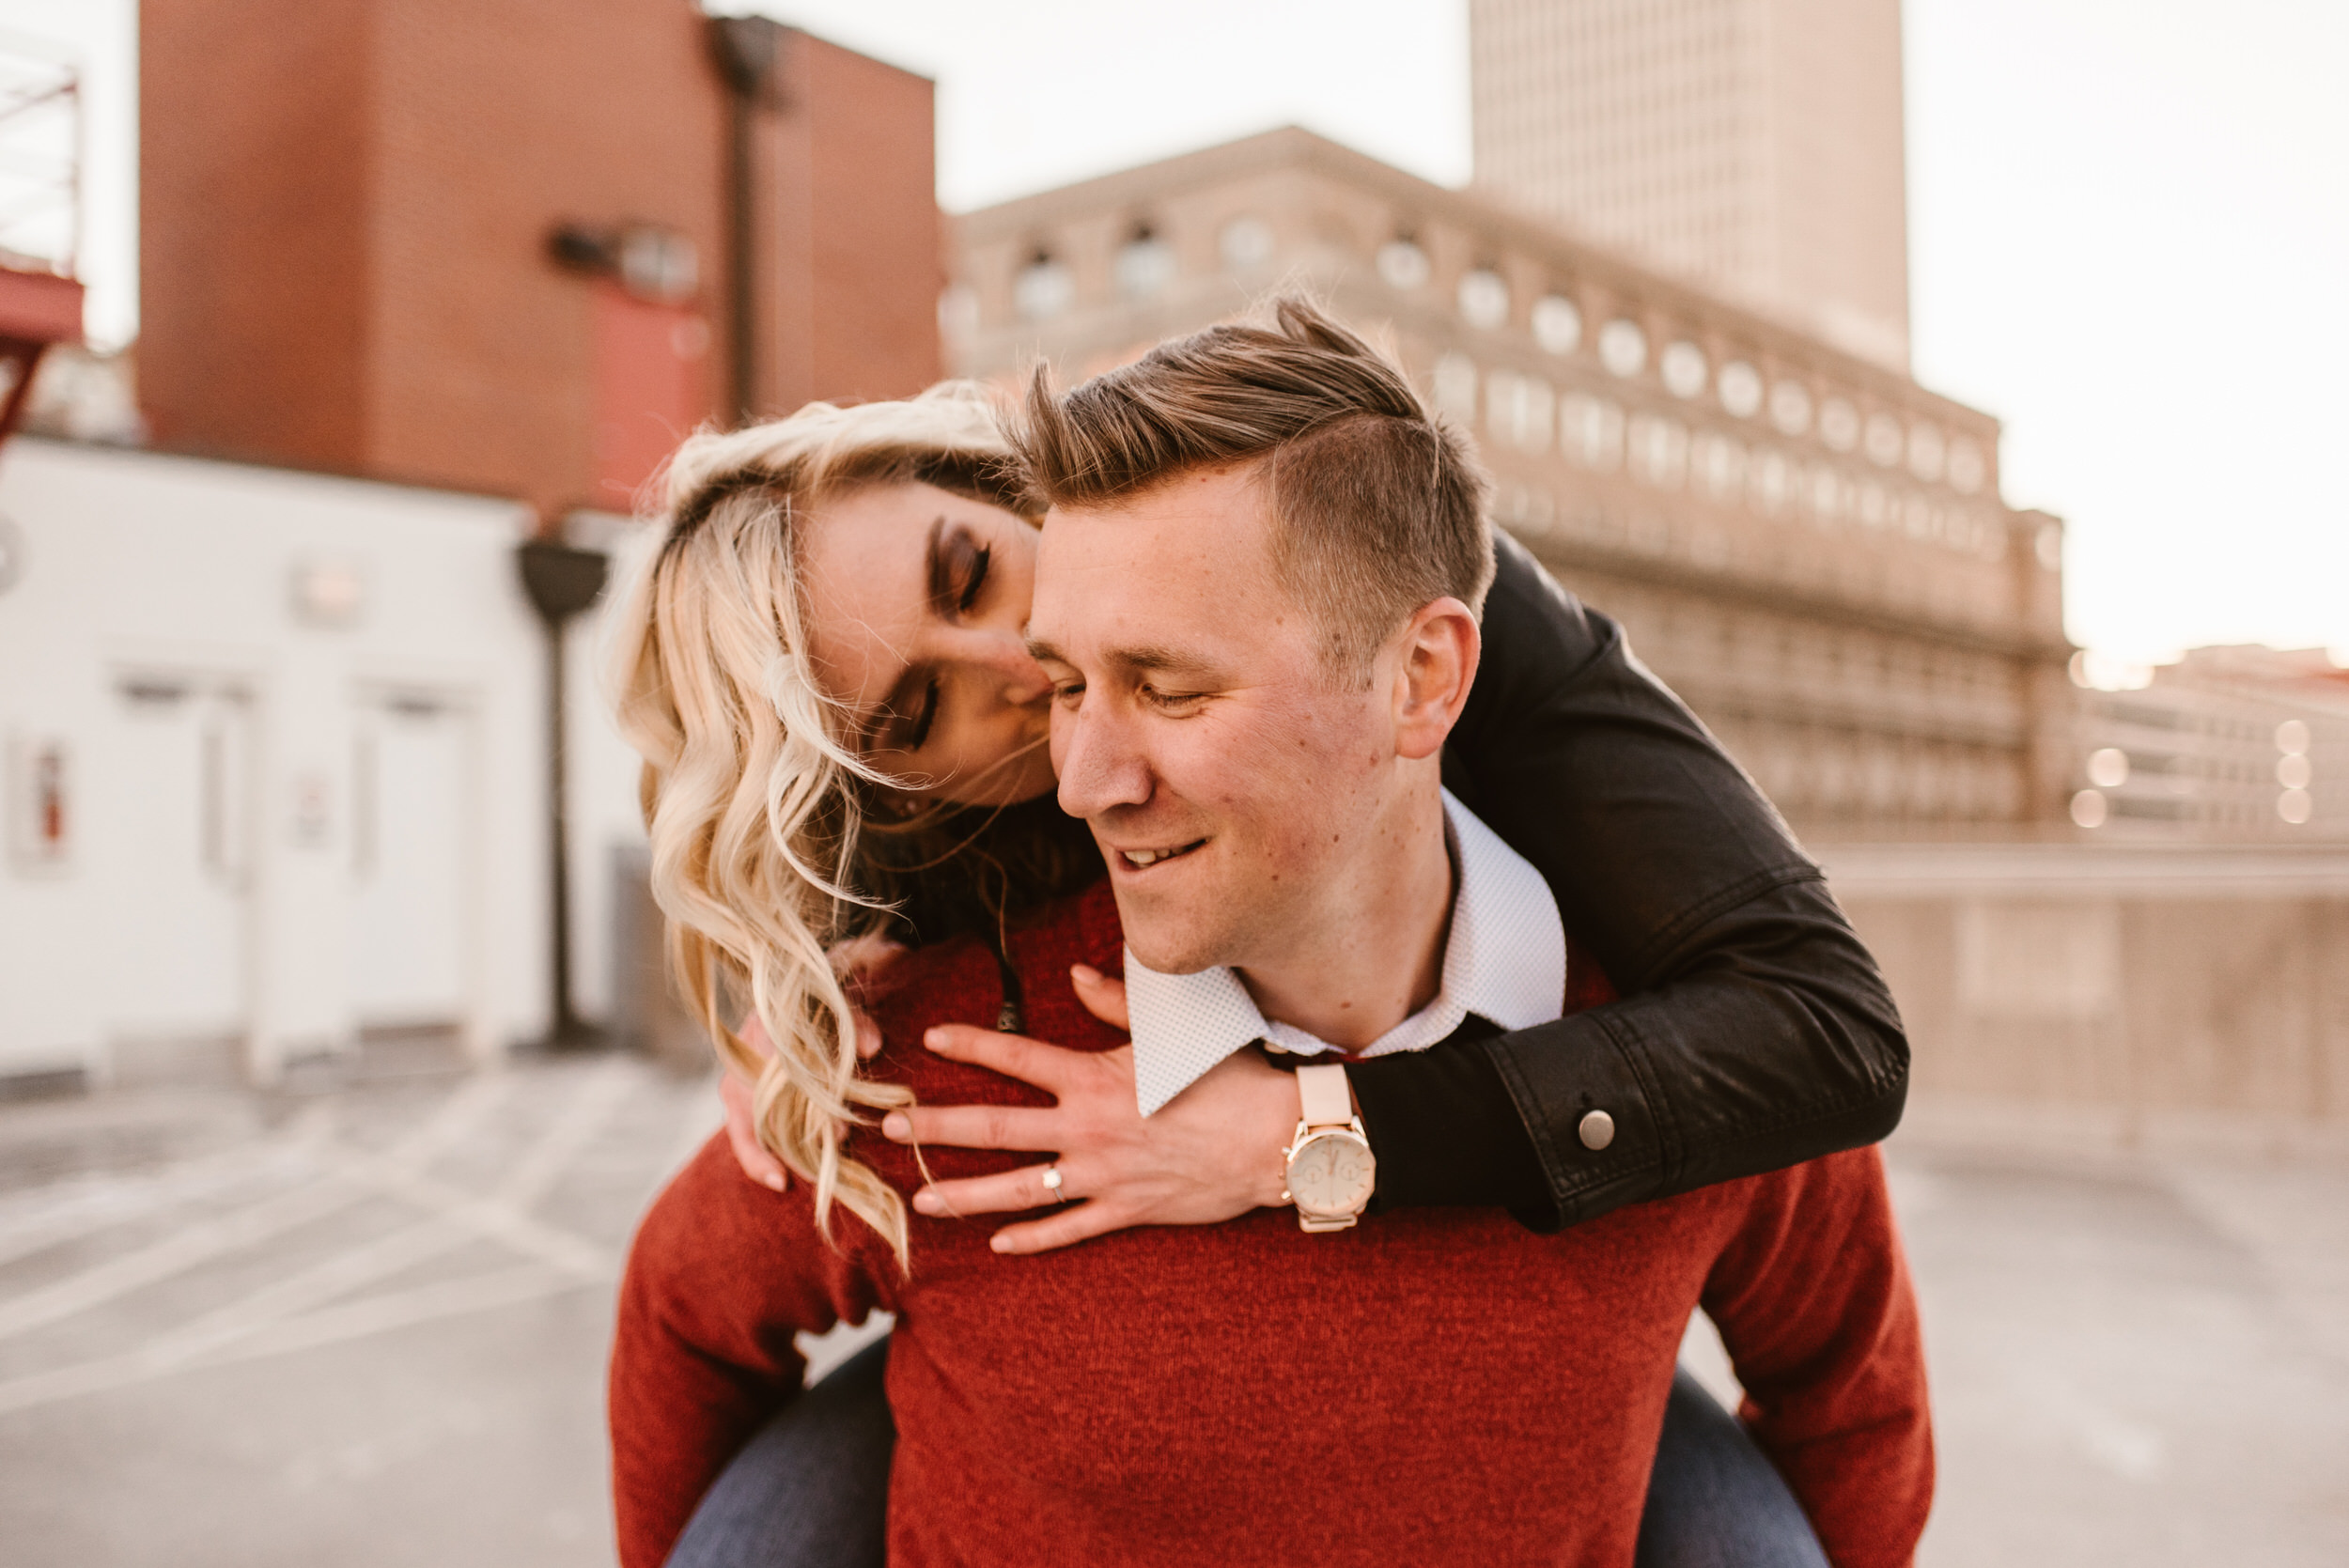 Gene Leahy Mall Omaha Engagement Session Kaylie Sirek Photography 23.jpg